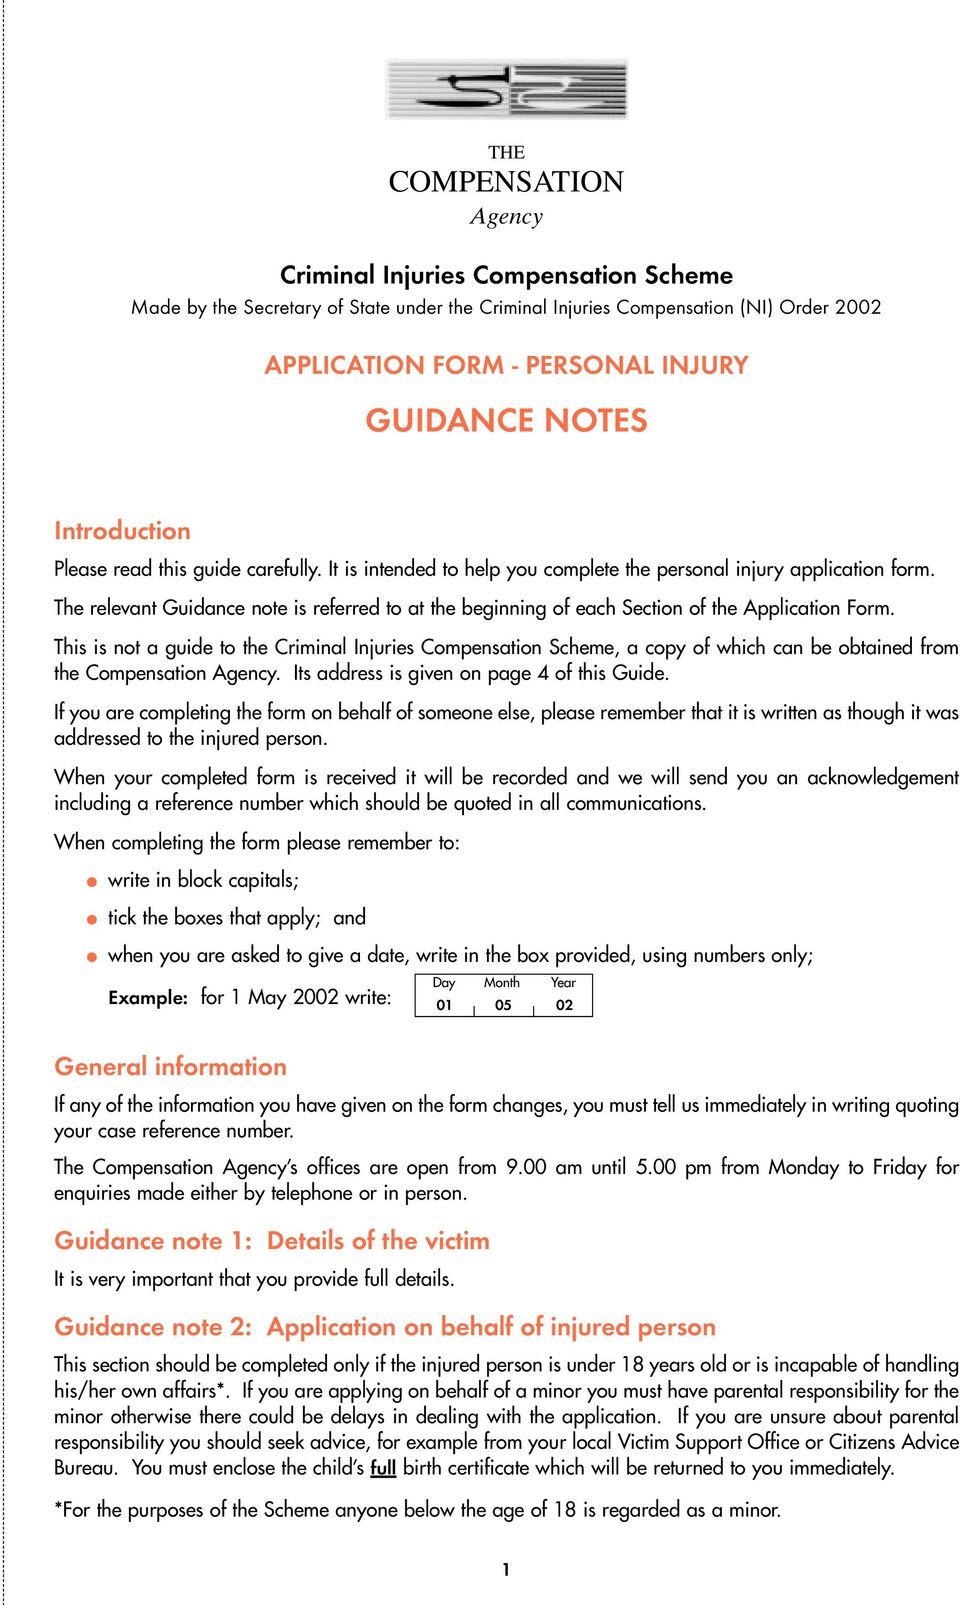 The relevant Guidance note is referred to at the beginning of each Section of the Application Form.